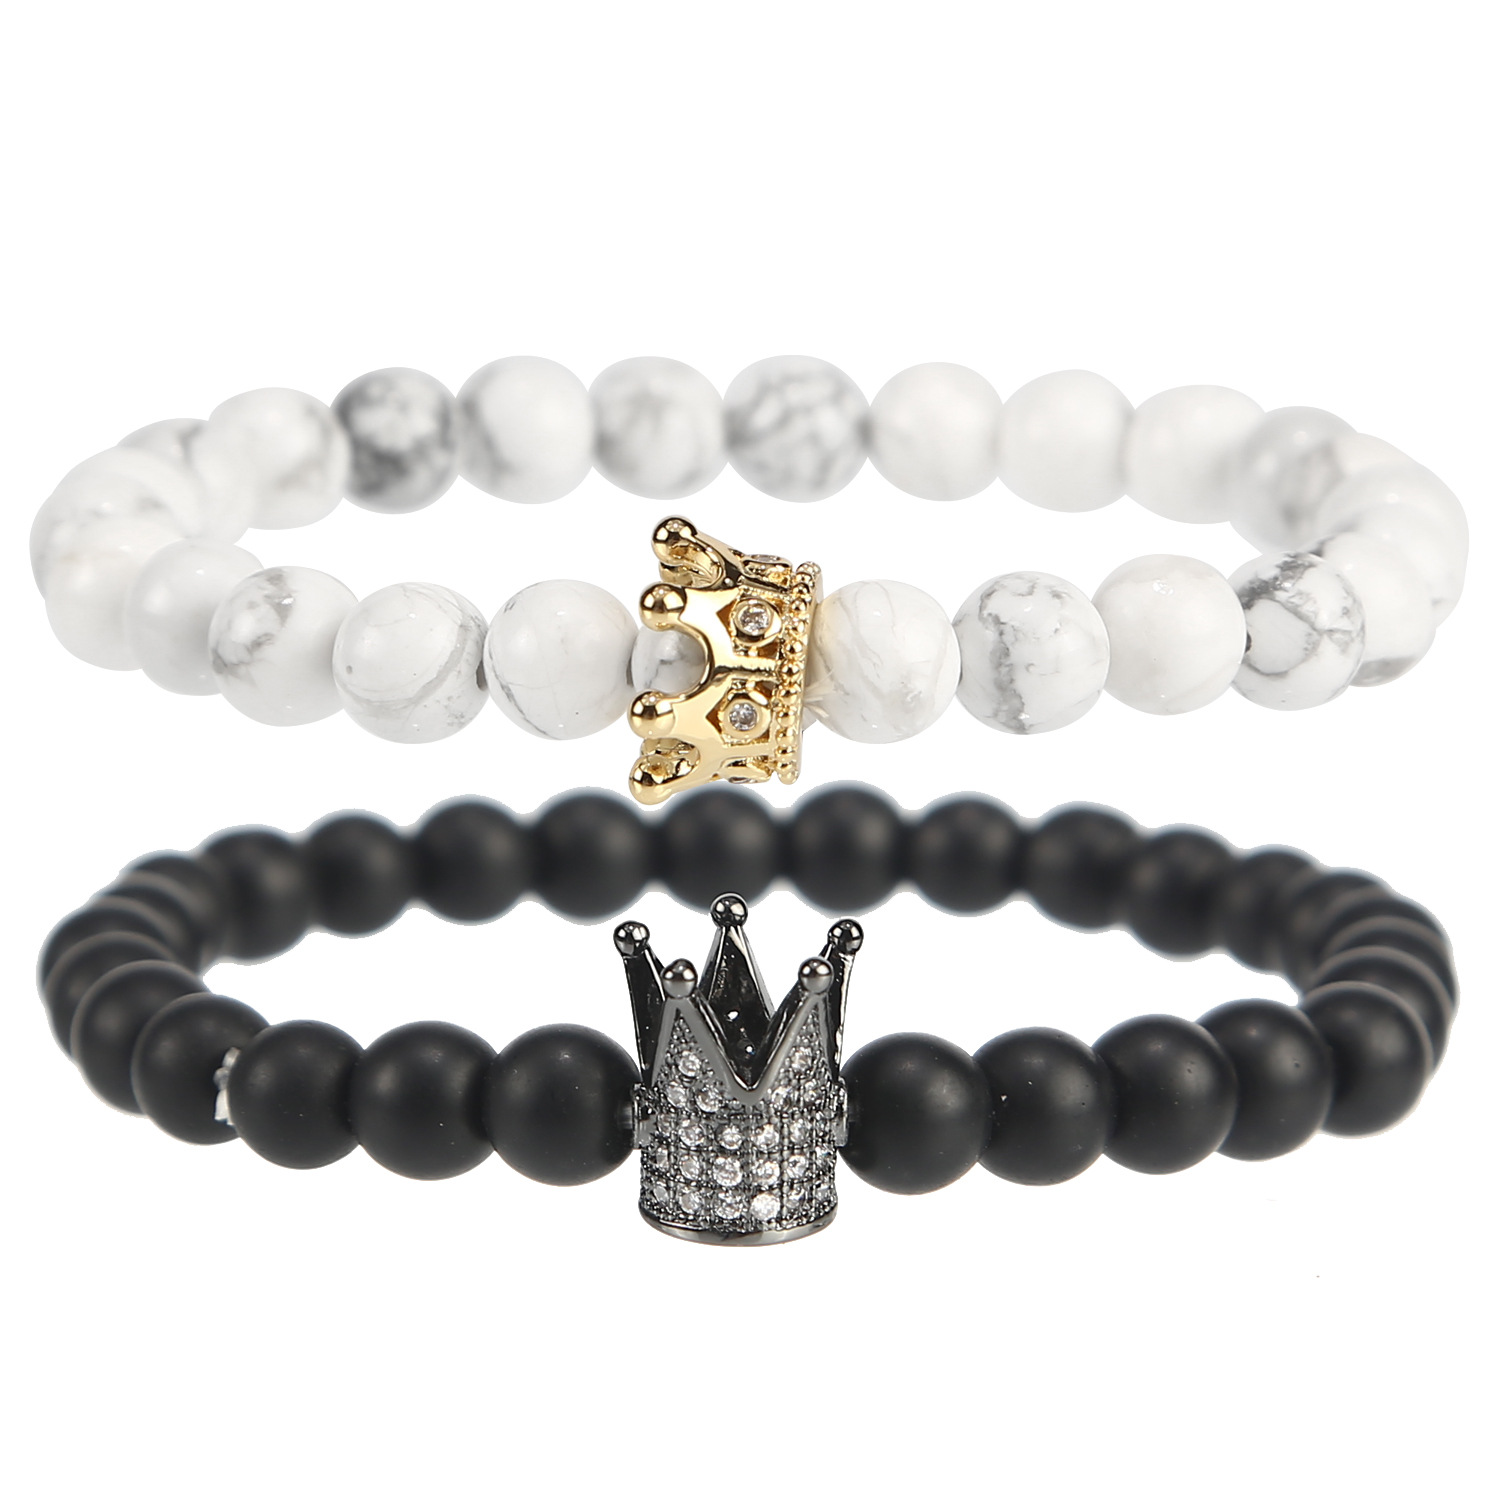 Bracelet accessories product dumb black frosted natural white hoard of crown charm bracelets bracelets jewelry stone couples